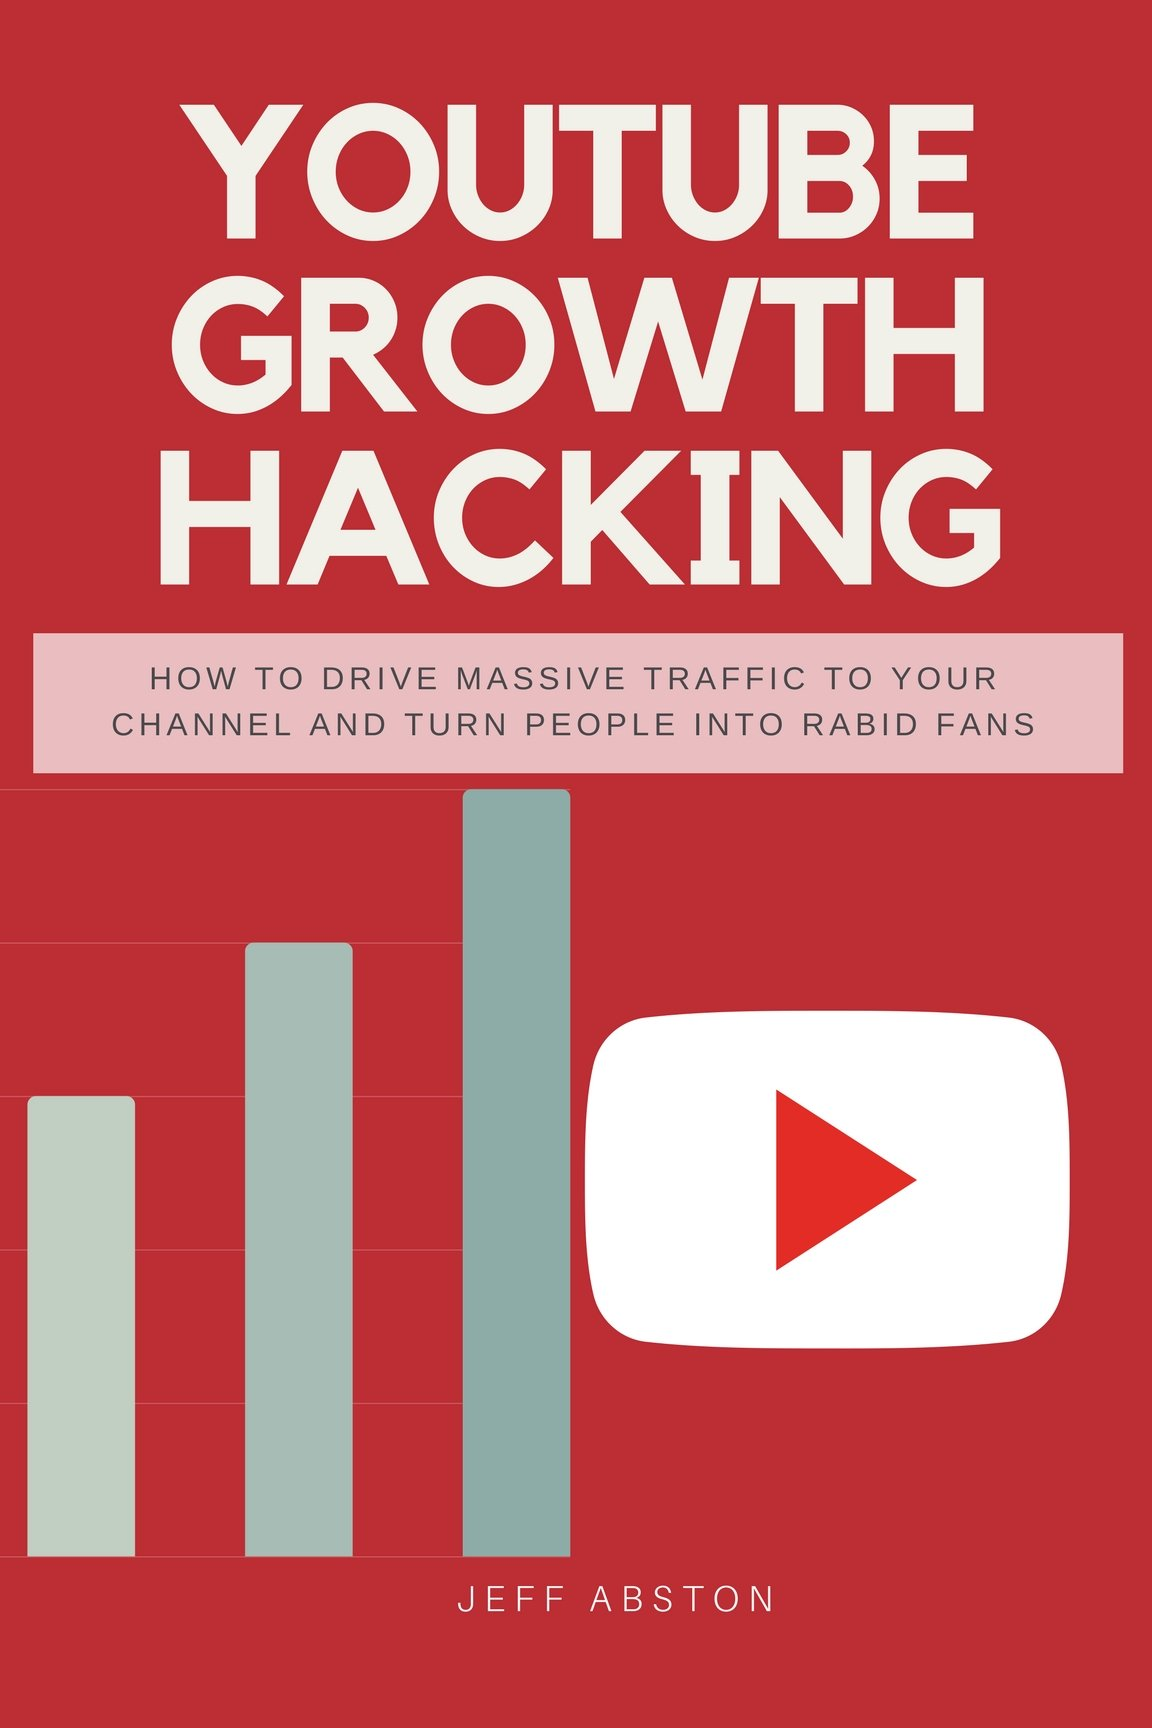 Youtube Growth Hacking: How to Drive Massive Traffic to Your Channel And Turn People Into Rabid Fans (Social Media Marketing Book 2)